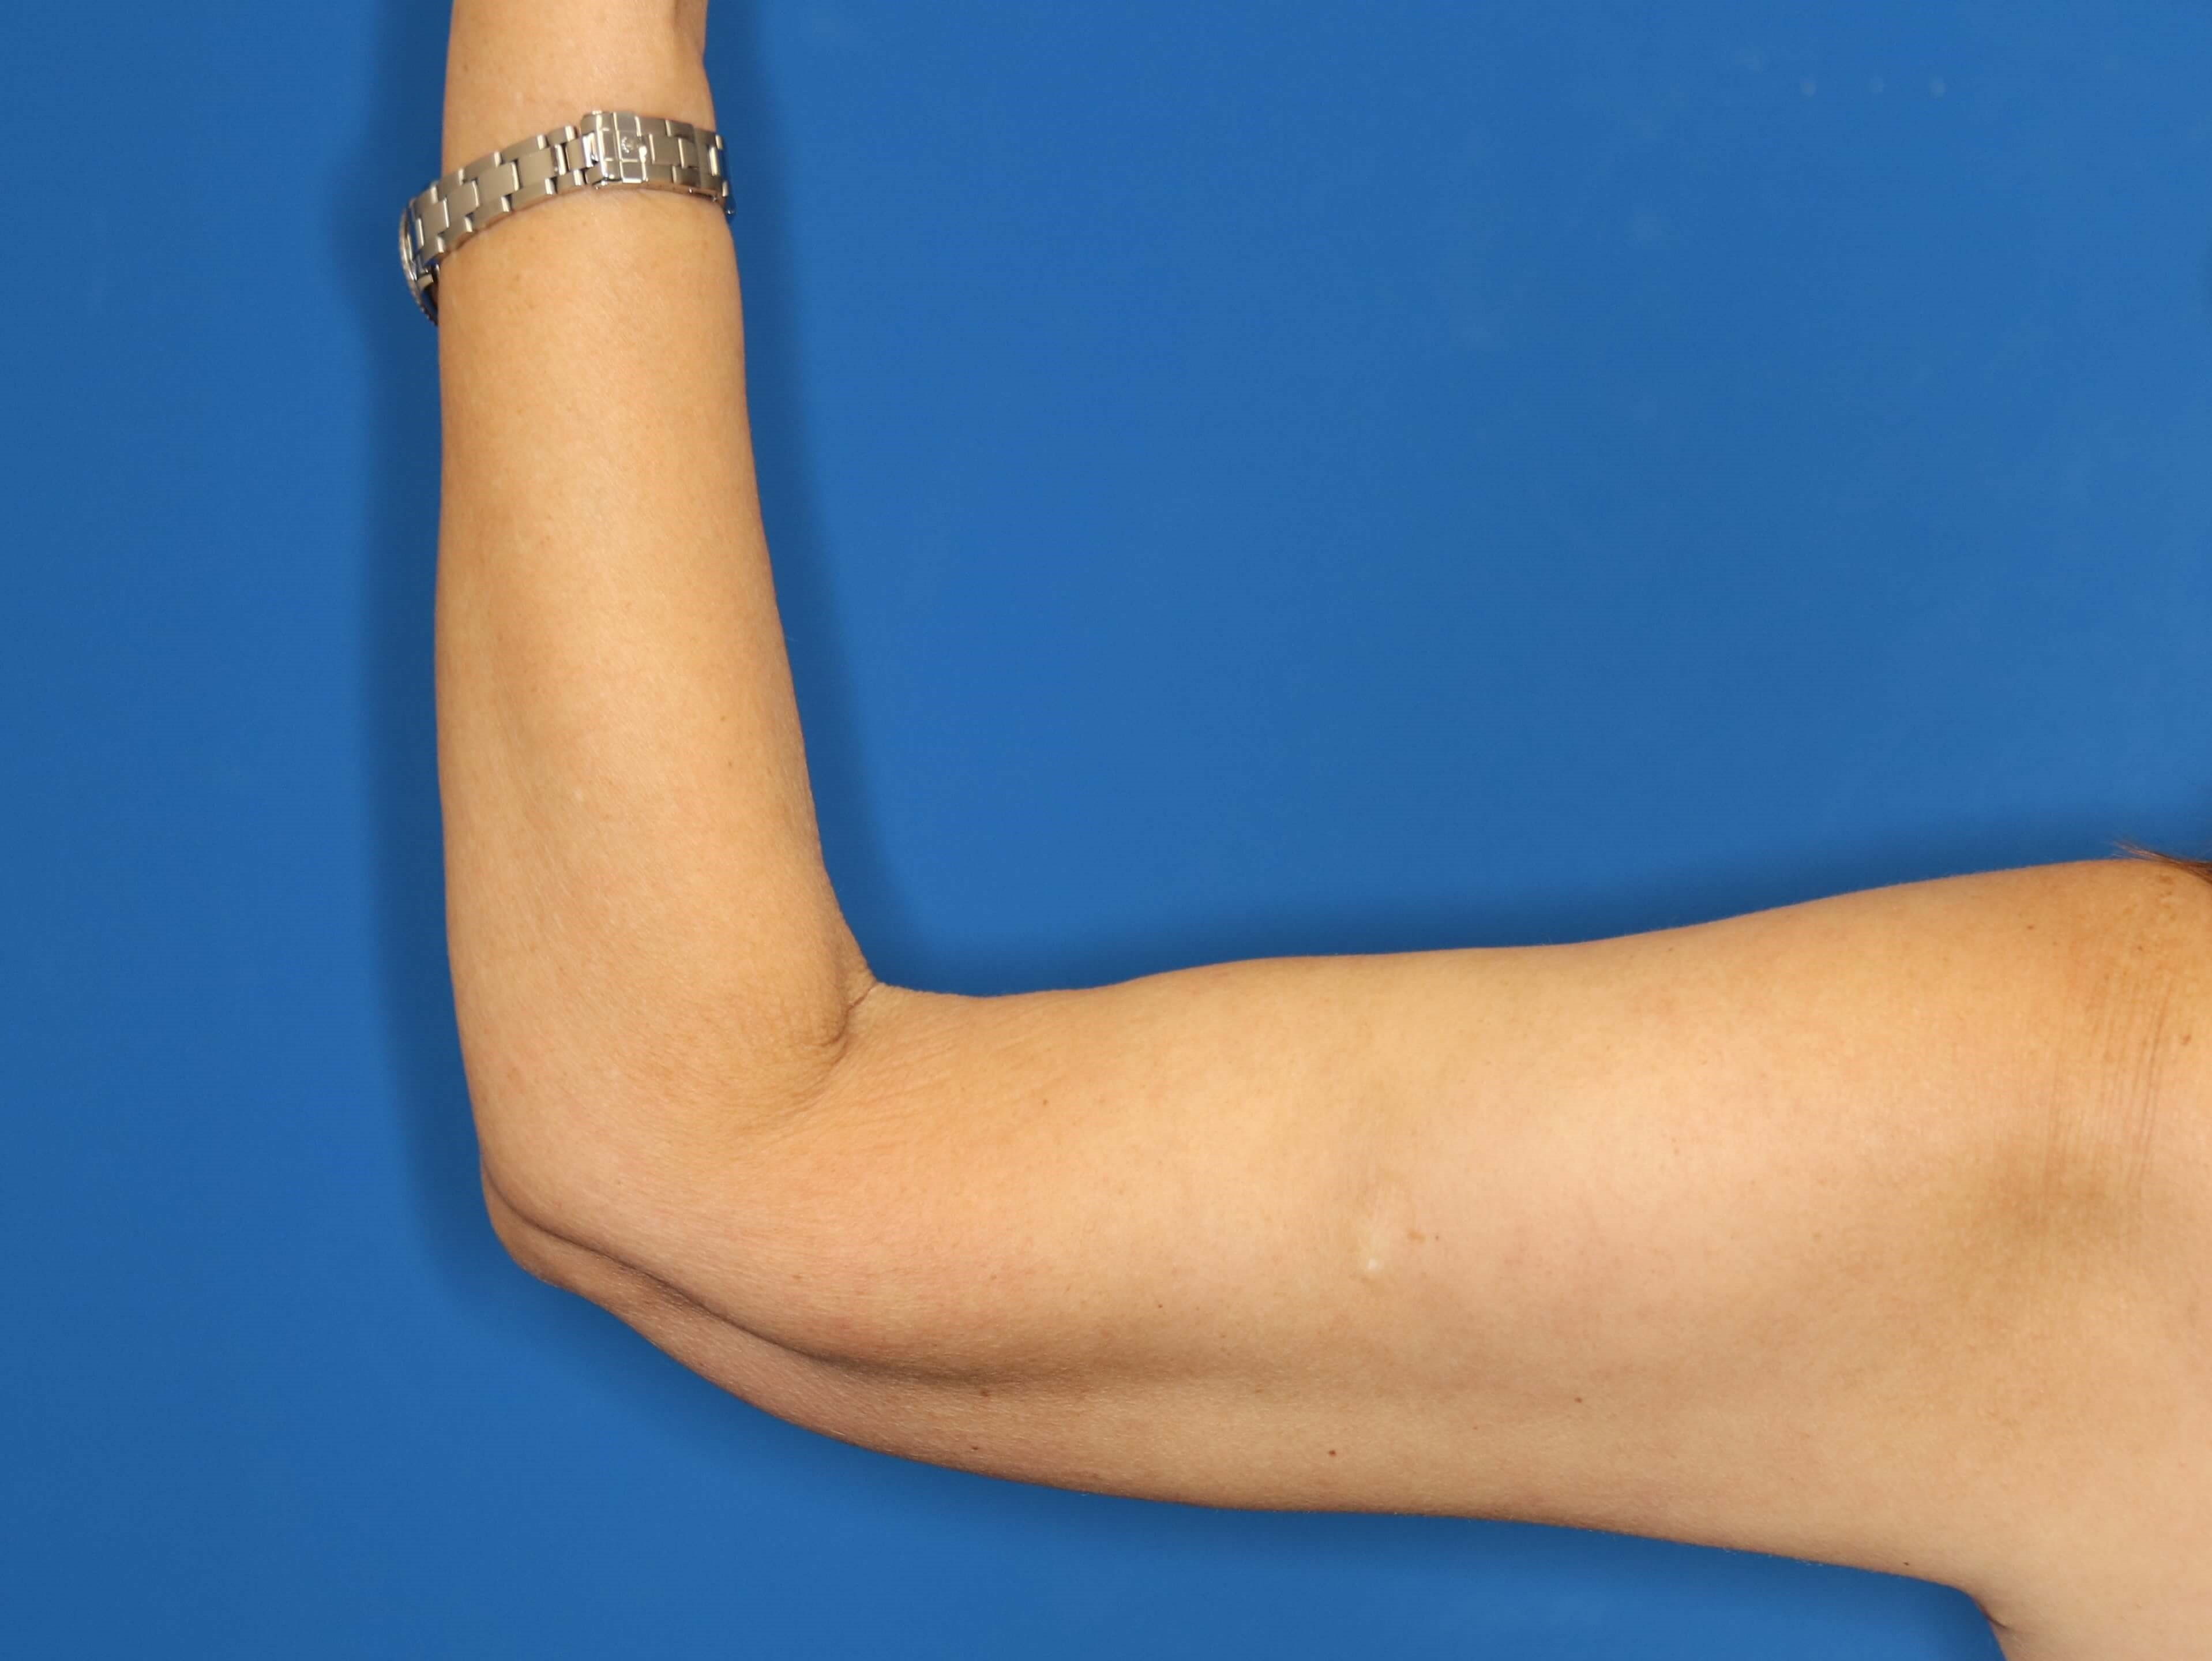 Arm Lift in Downers Grove, IL 3 months post op